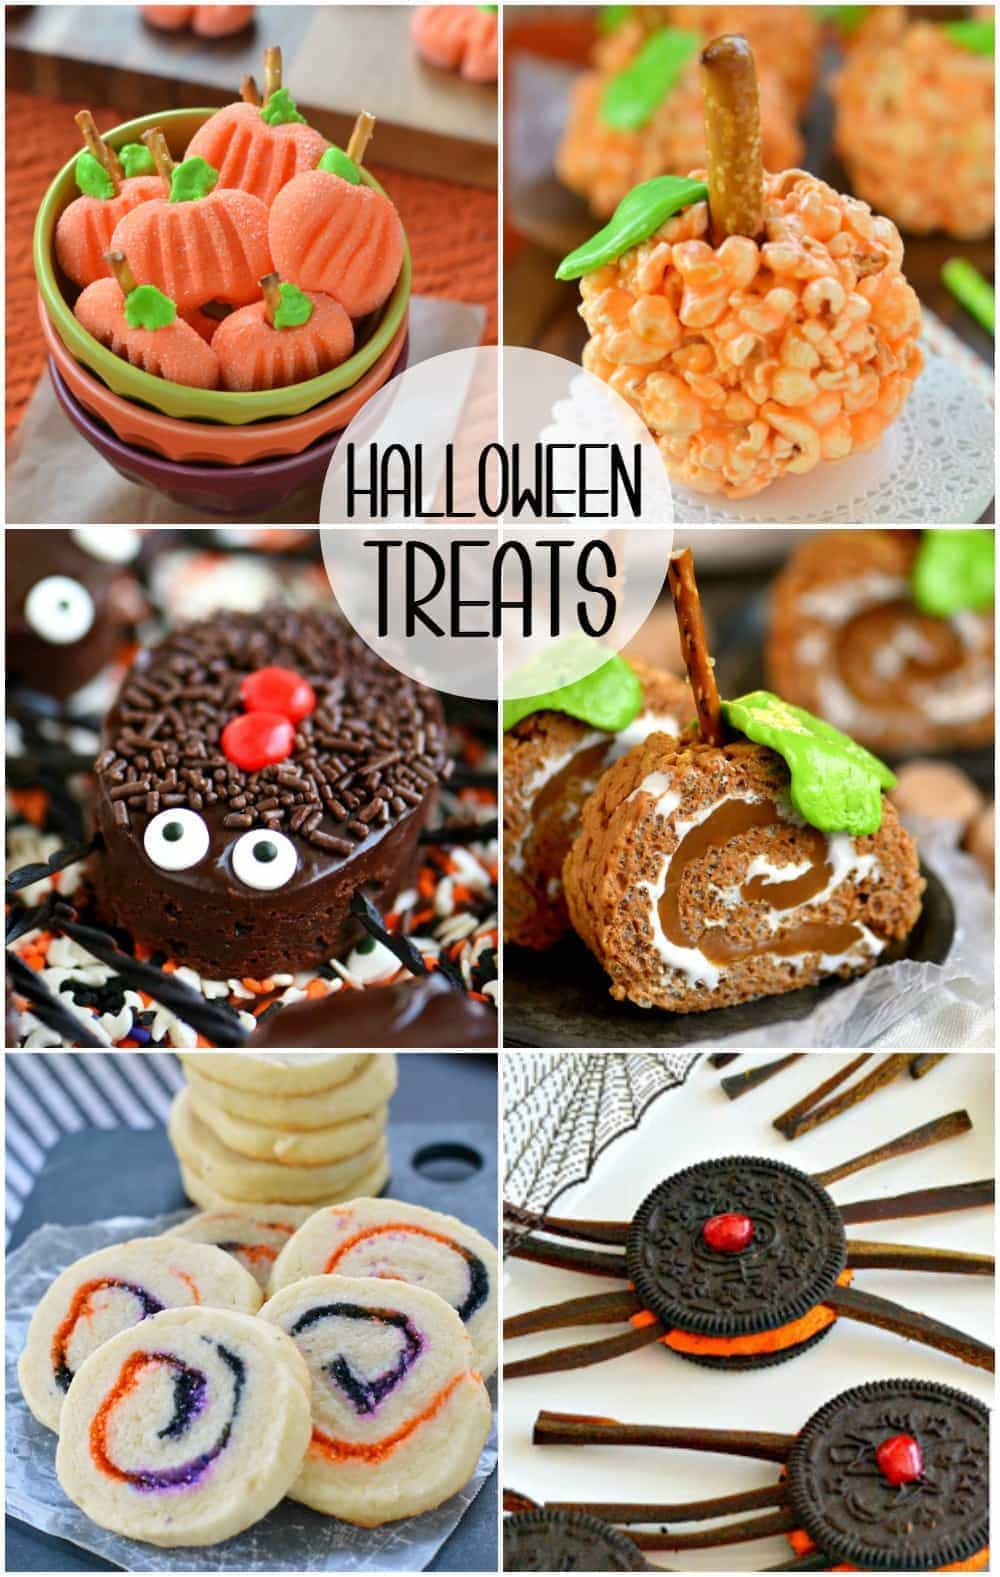 Amazing Halloween eats and treats to make your Halloween party extra special this year!